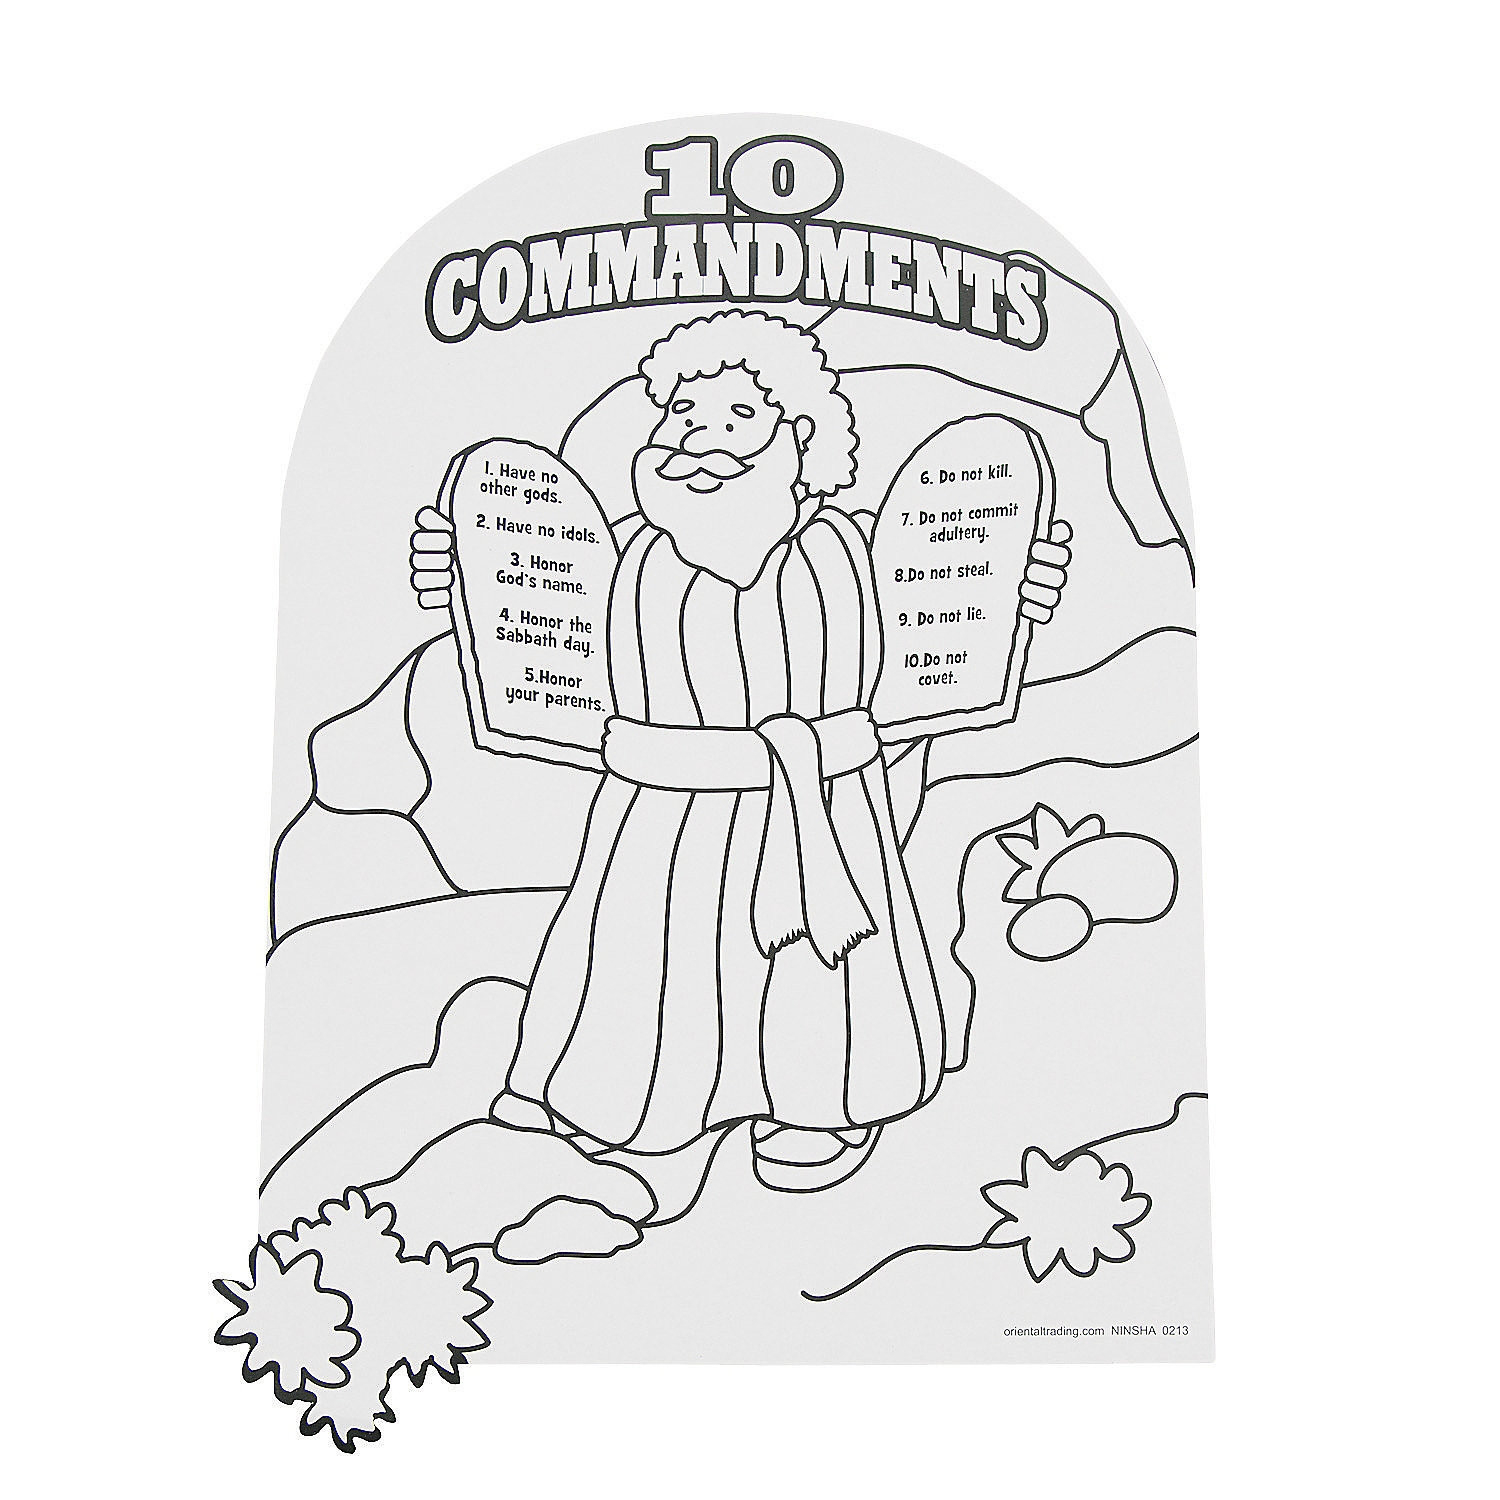 15 Fresh Free Printable Ten Commandments Coloring Pages - Free Printable Ten Commandments Coloring Pages